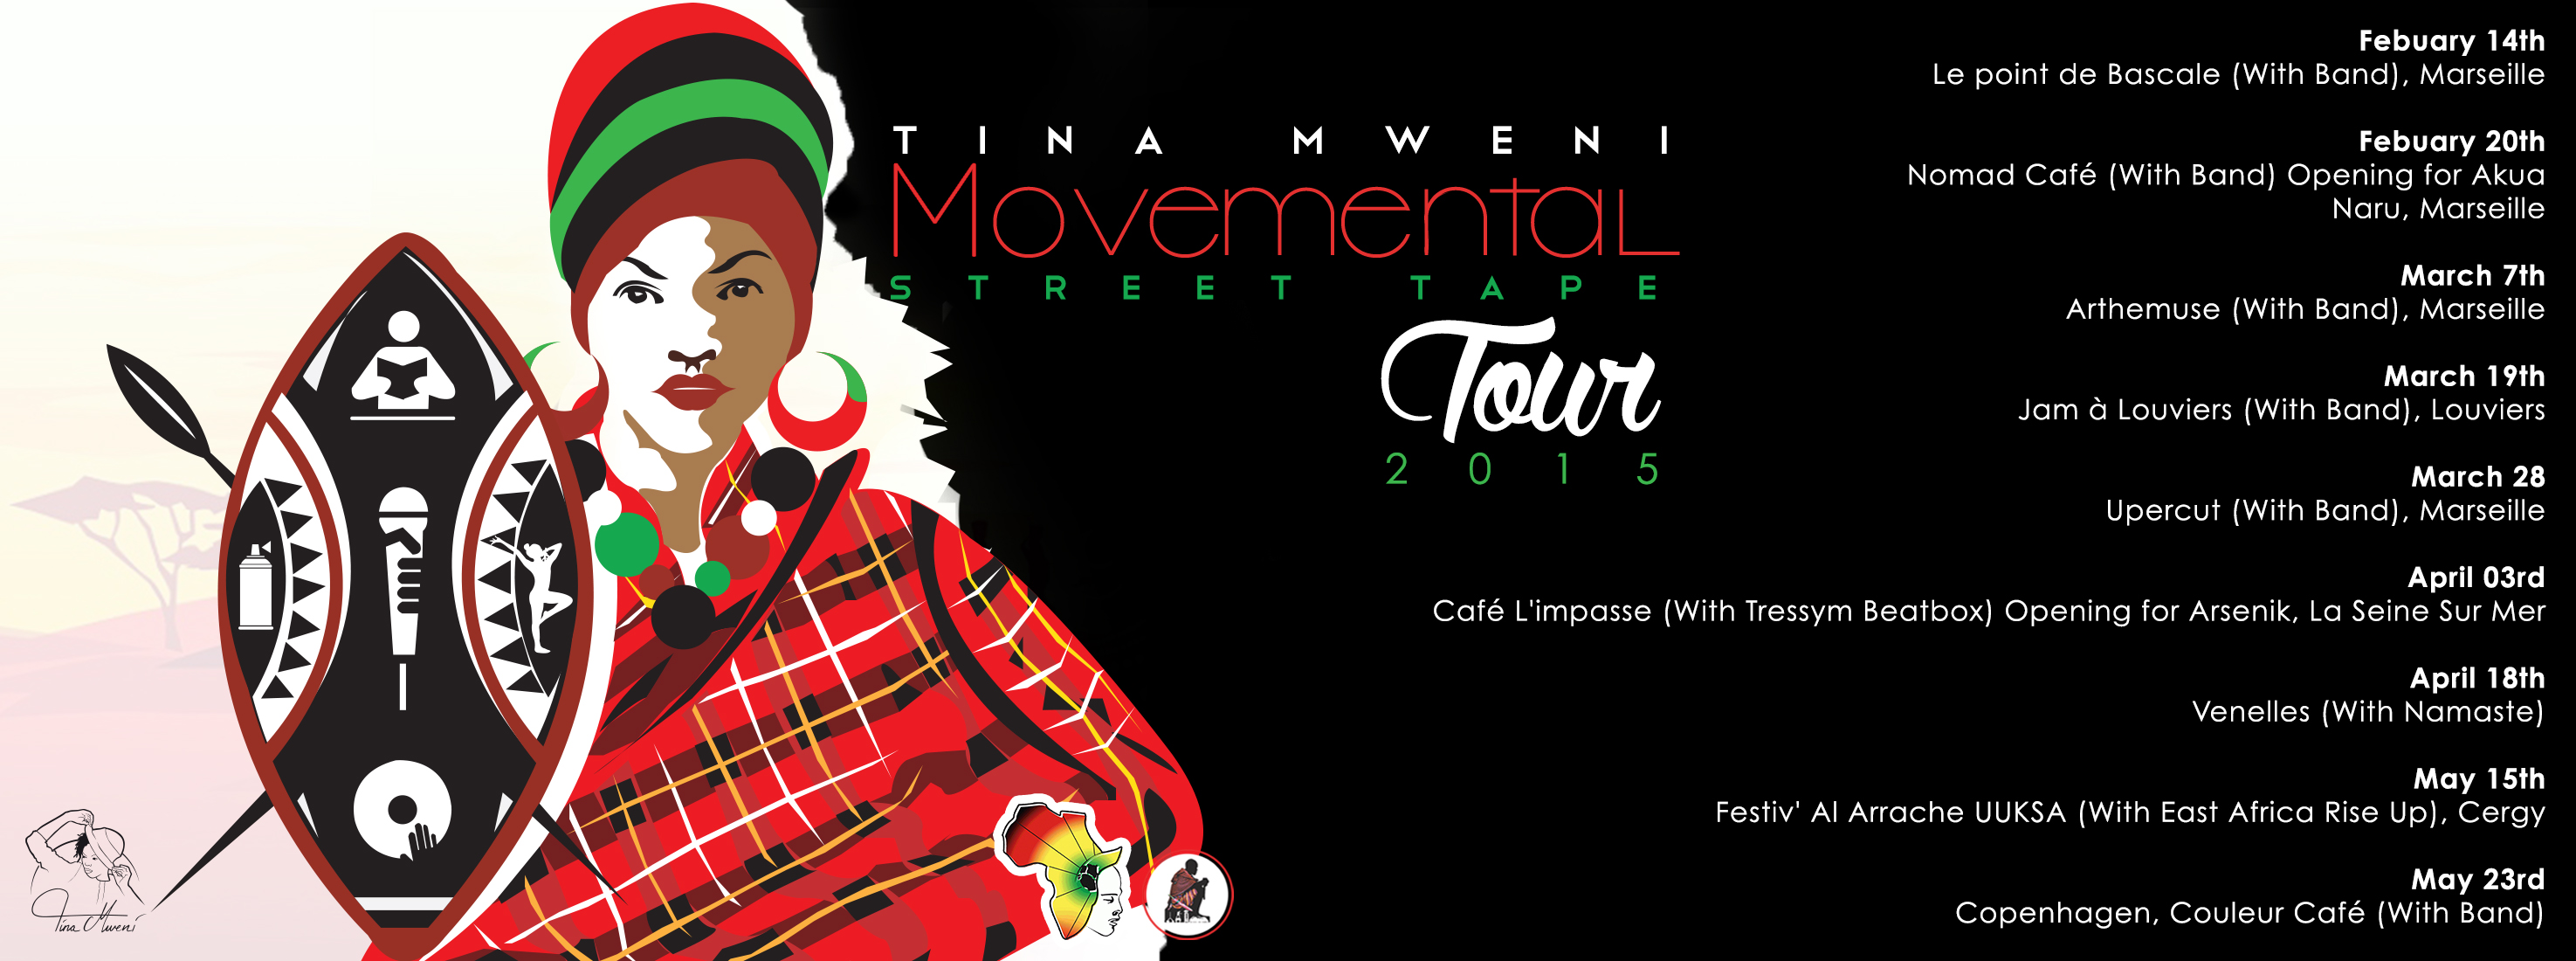 MovementaL Tour 2015